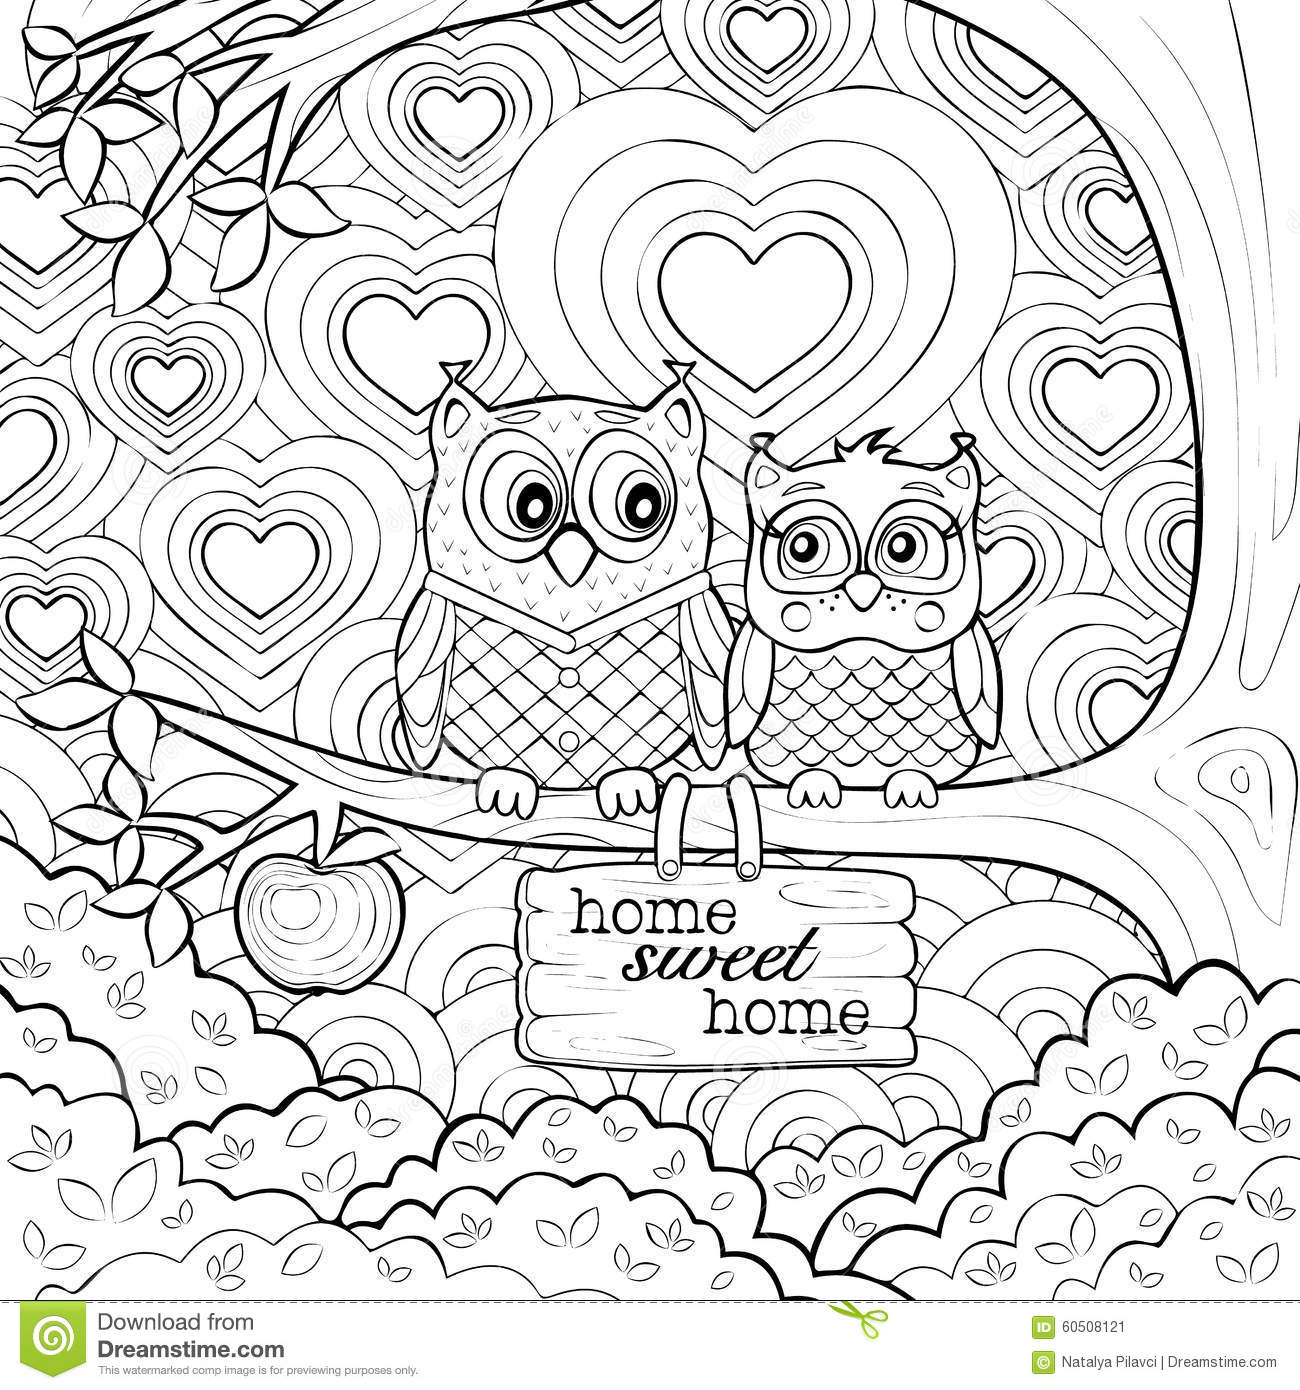 Art therapy coloring pages to download and print for free for Art is fun coloring pages